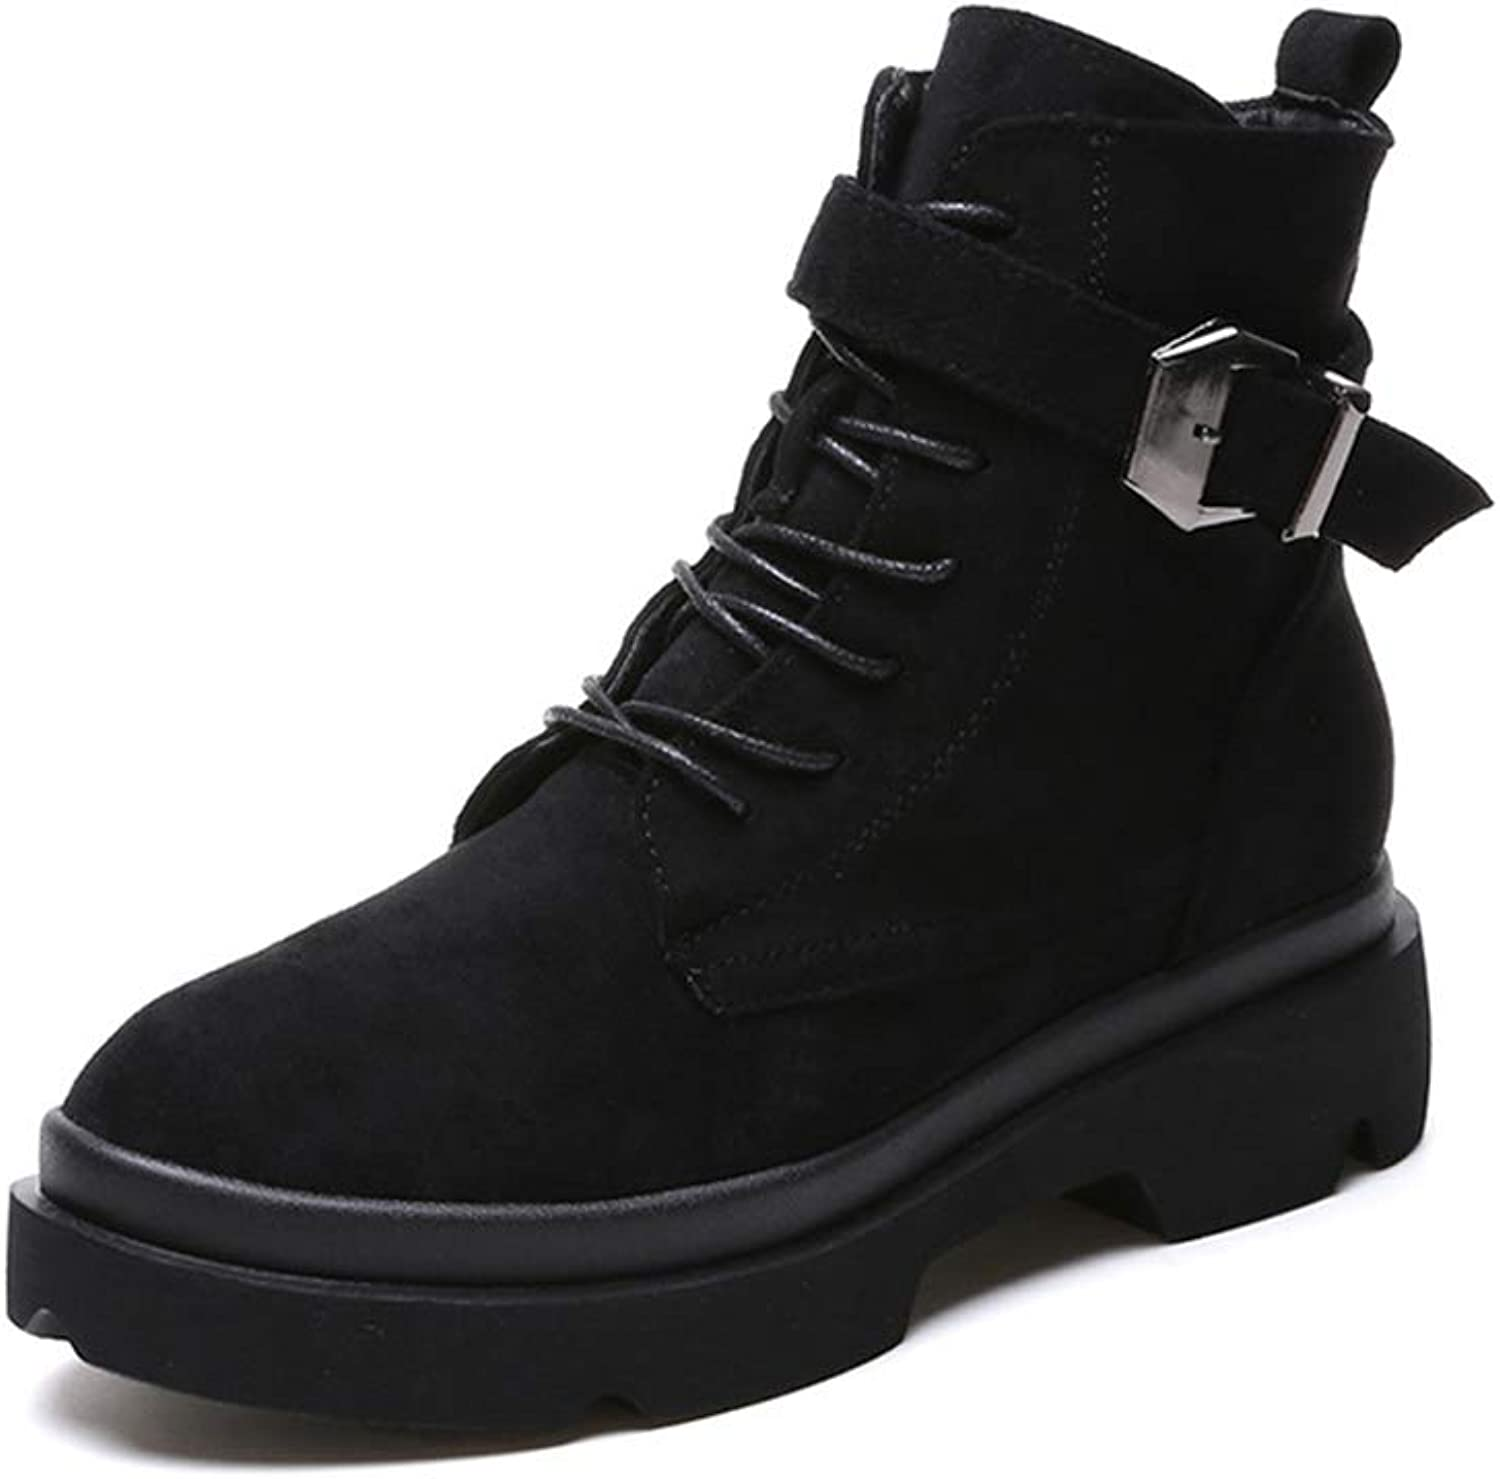 Women's Suede Lace Up Boots Buckle Winter Boots Warm Boots Thick Boots